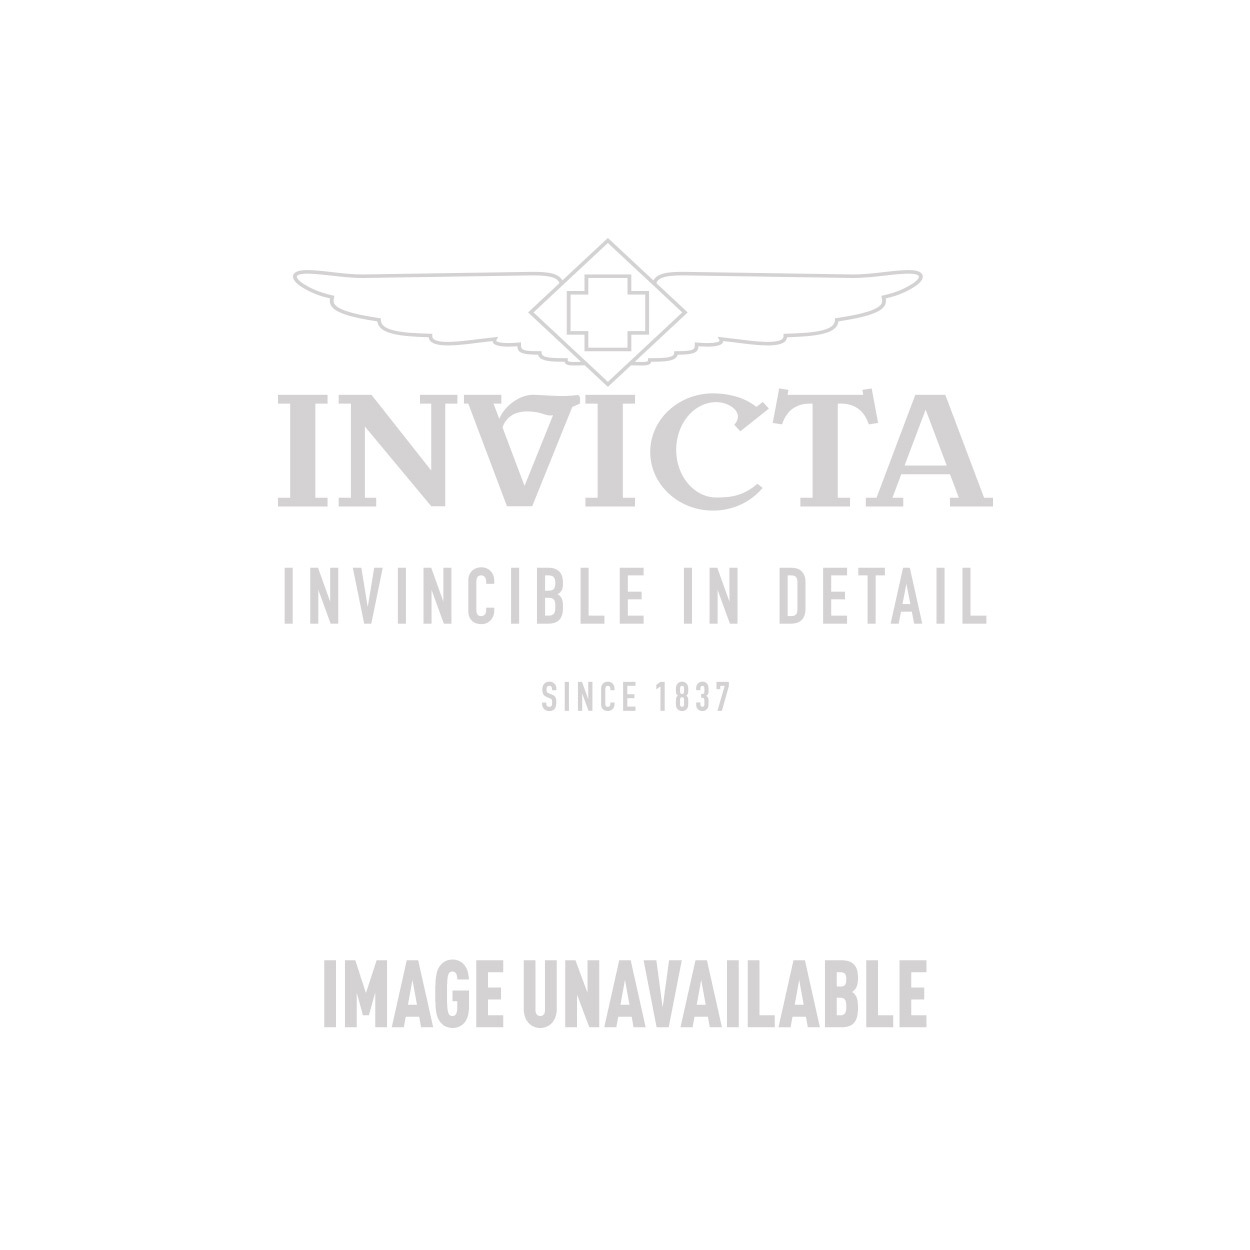 Invicta Coalition Forces Swiss Made Quartz Watch - Stainless Steel case Stainless Steel band - Model 17641